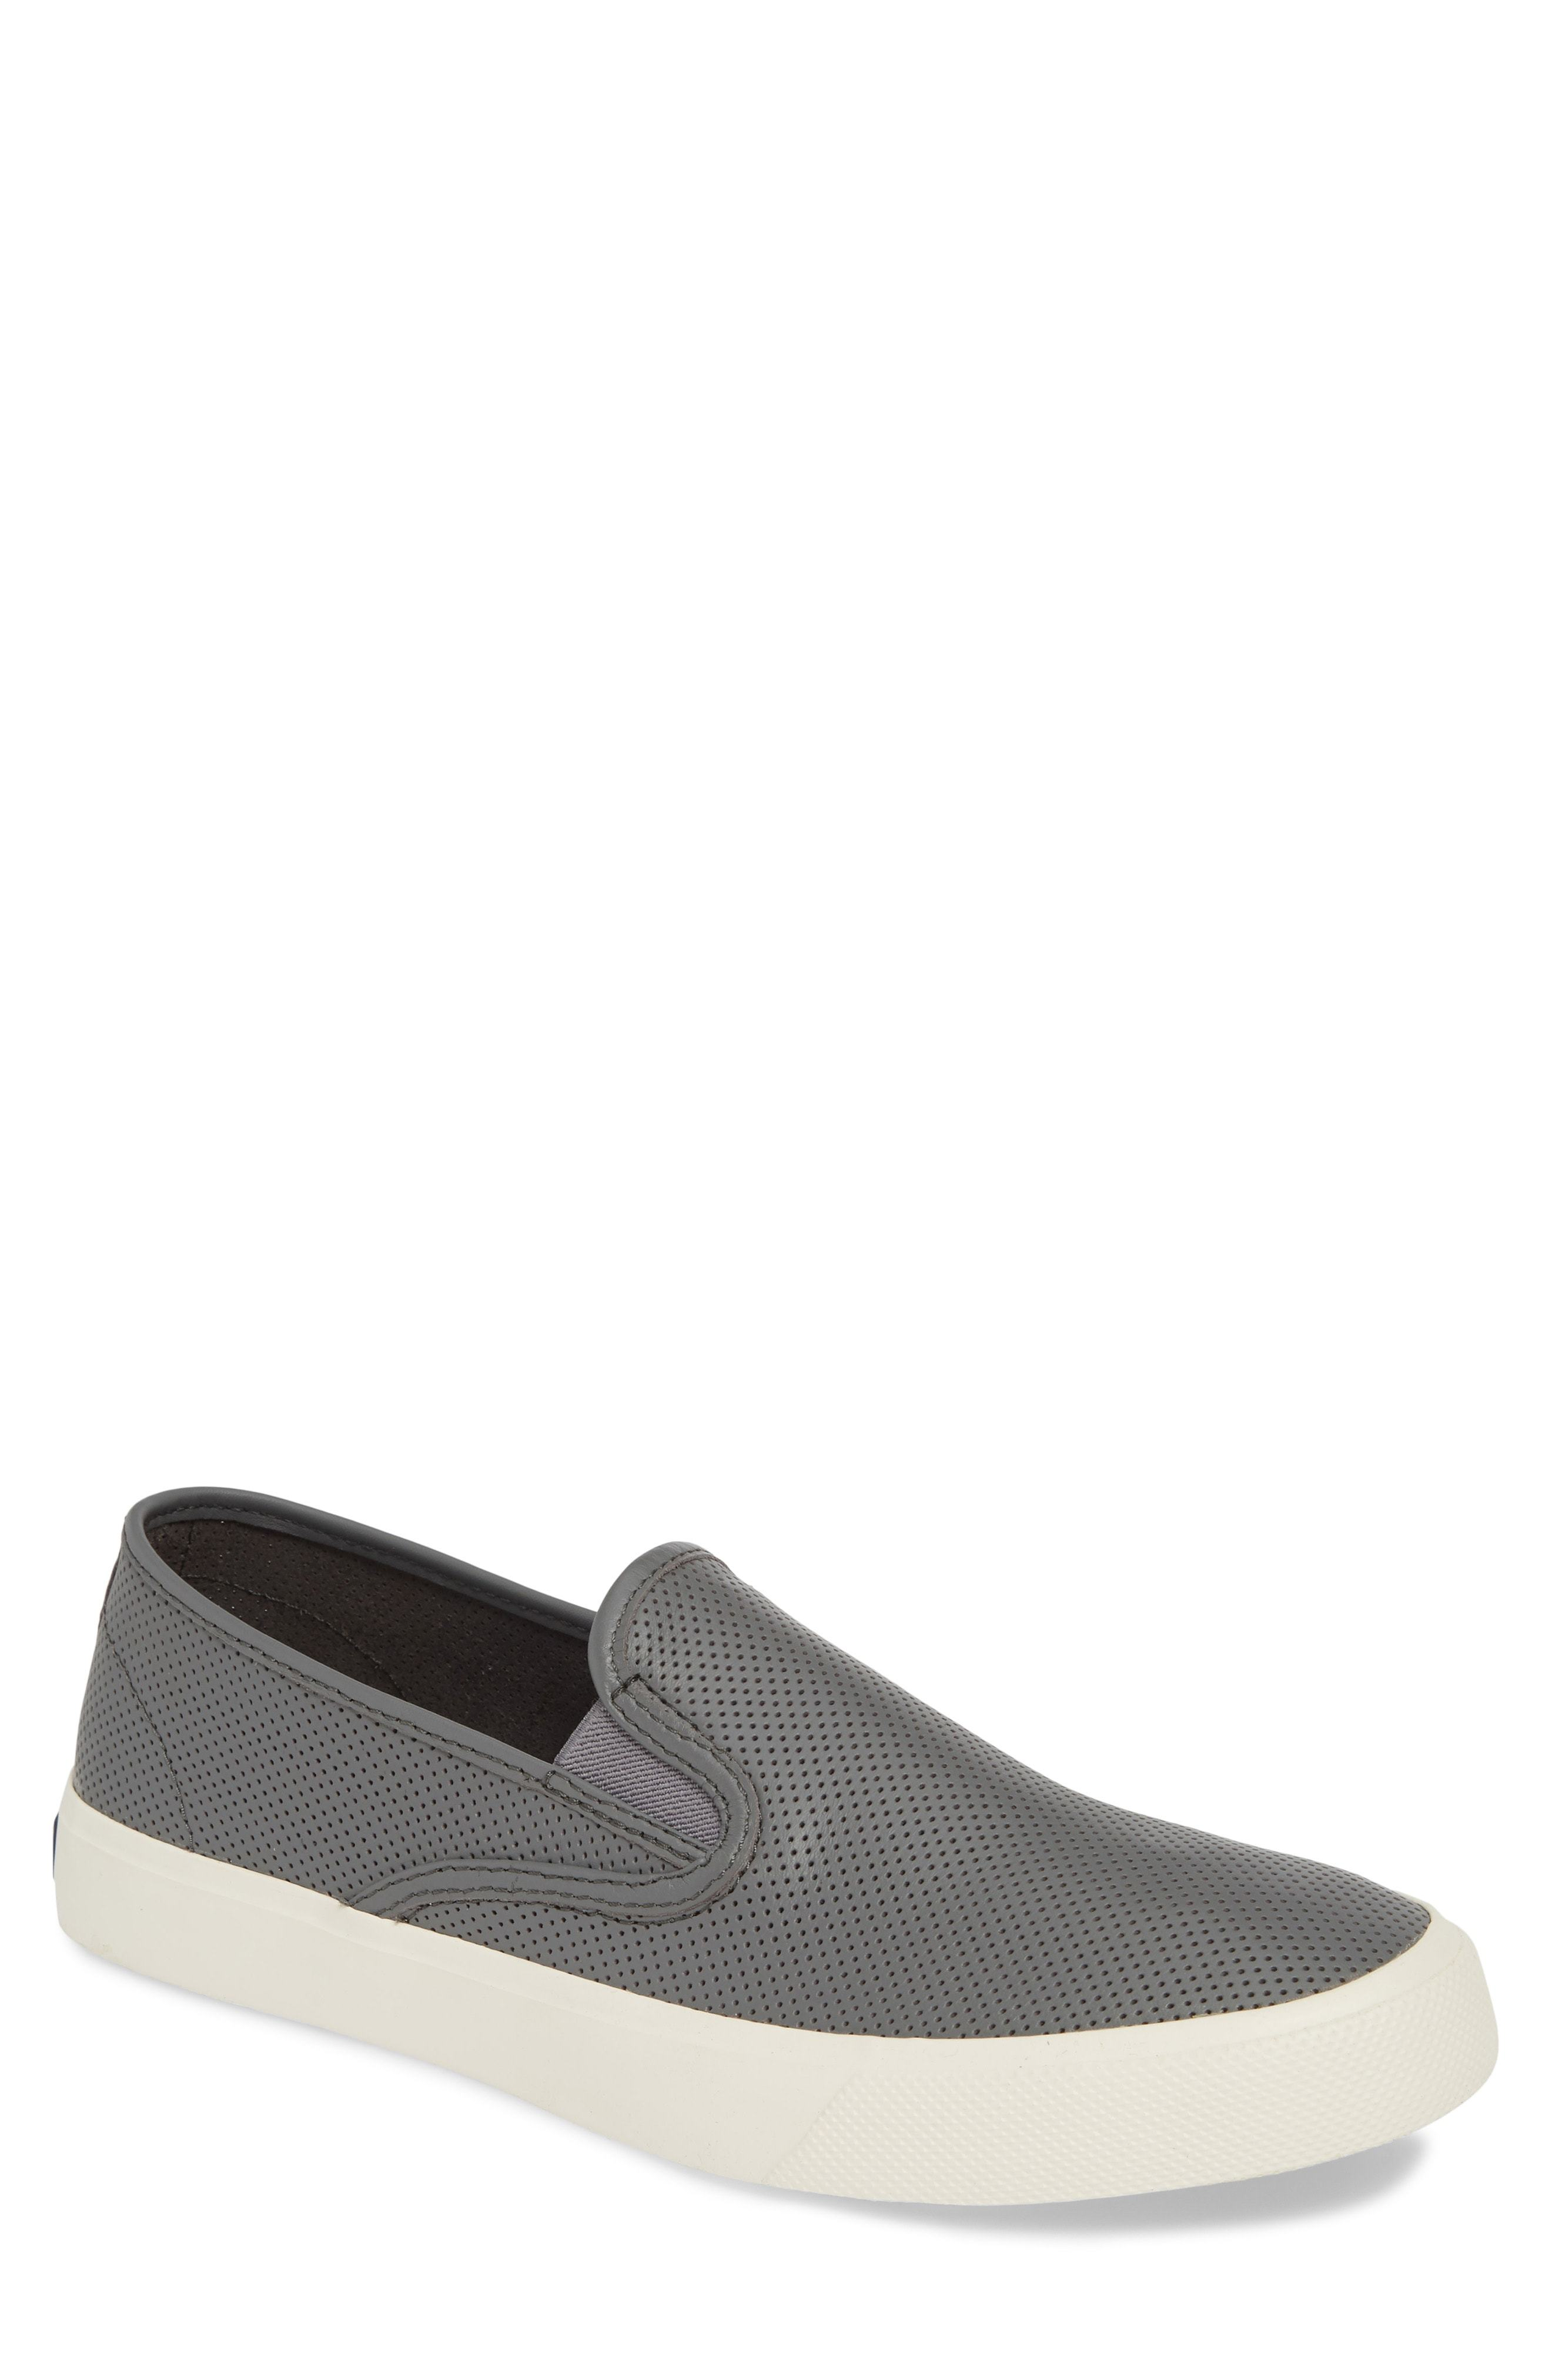 Sperry Captains Perforated Slip On